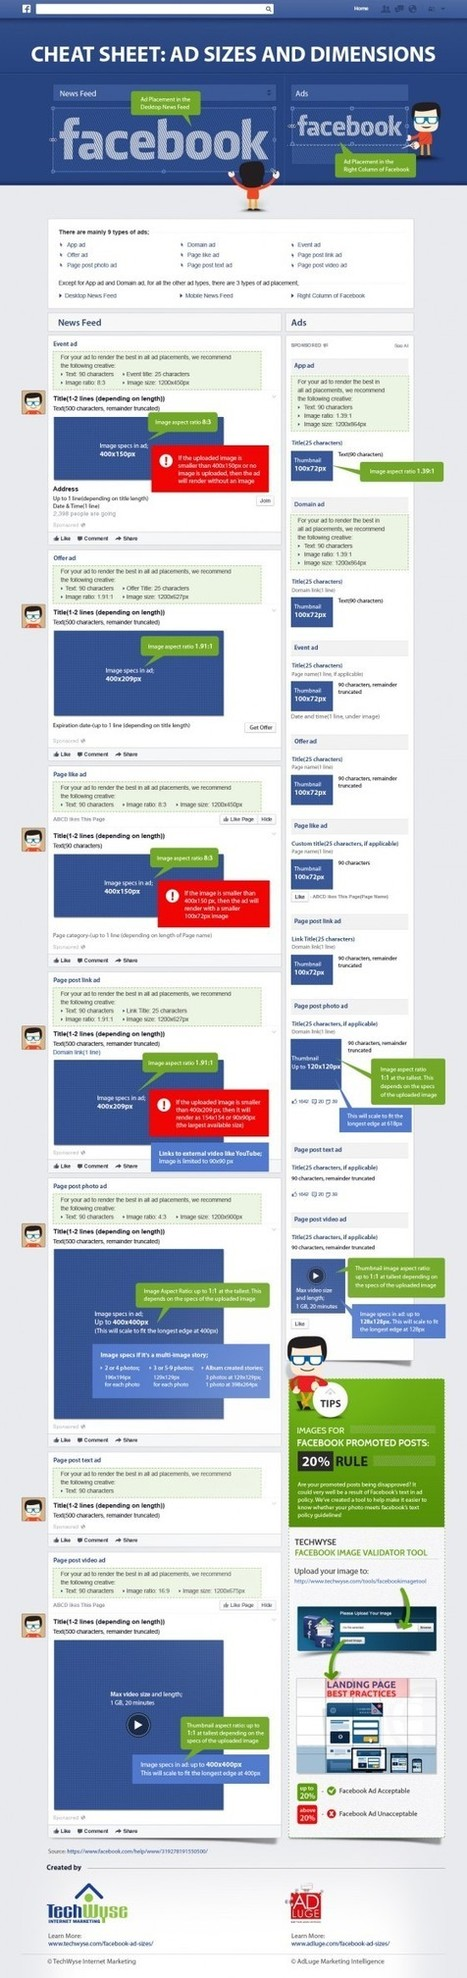 Annonces Facebook : Dimensions et Spécifications en une Infographie | Emarketinglicious | CRAW | Scoop.it